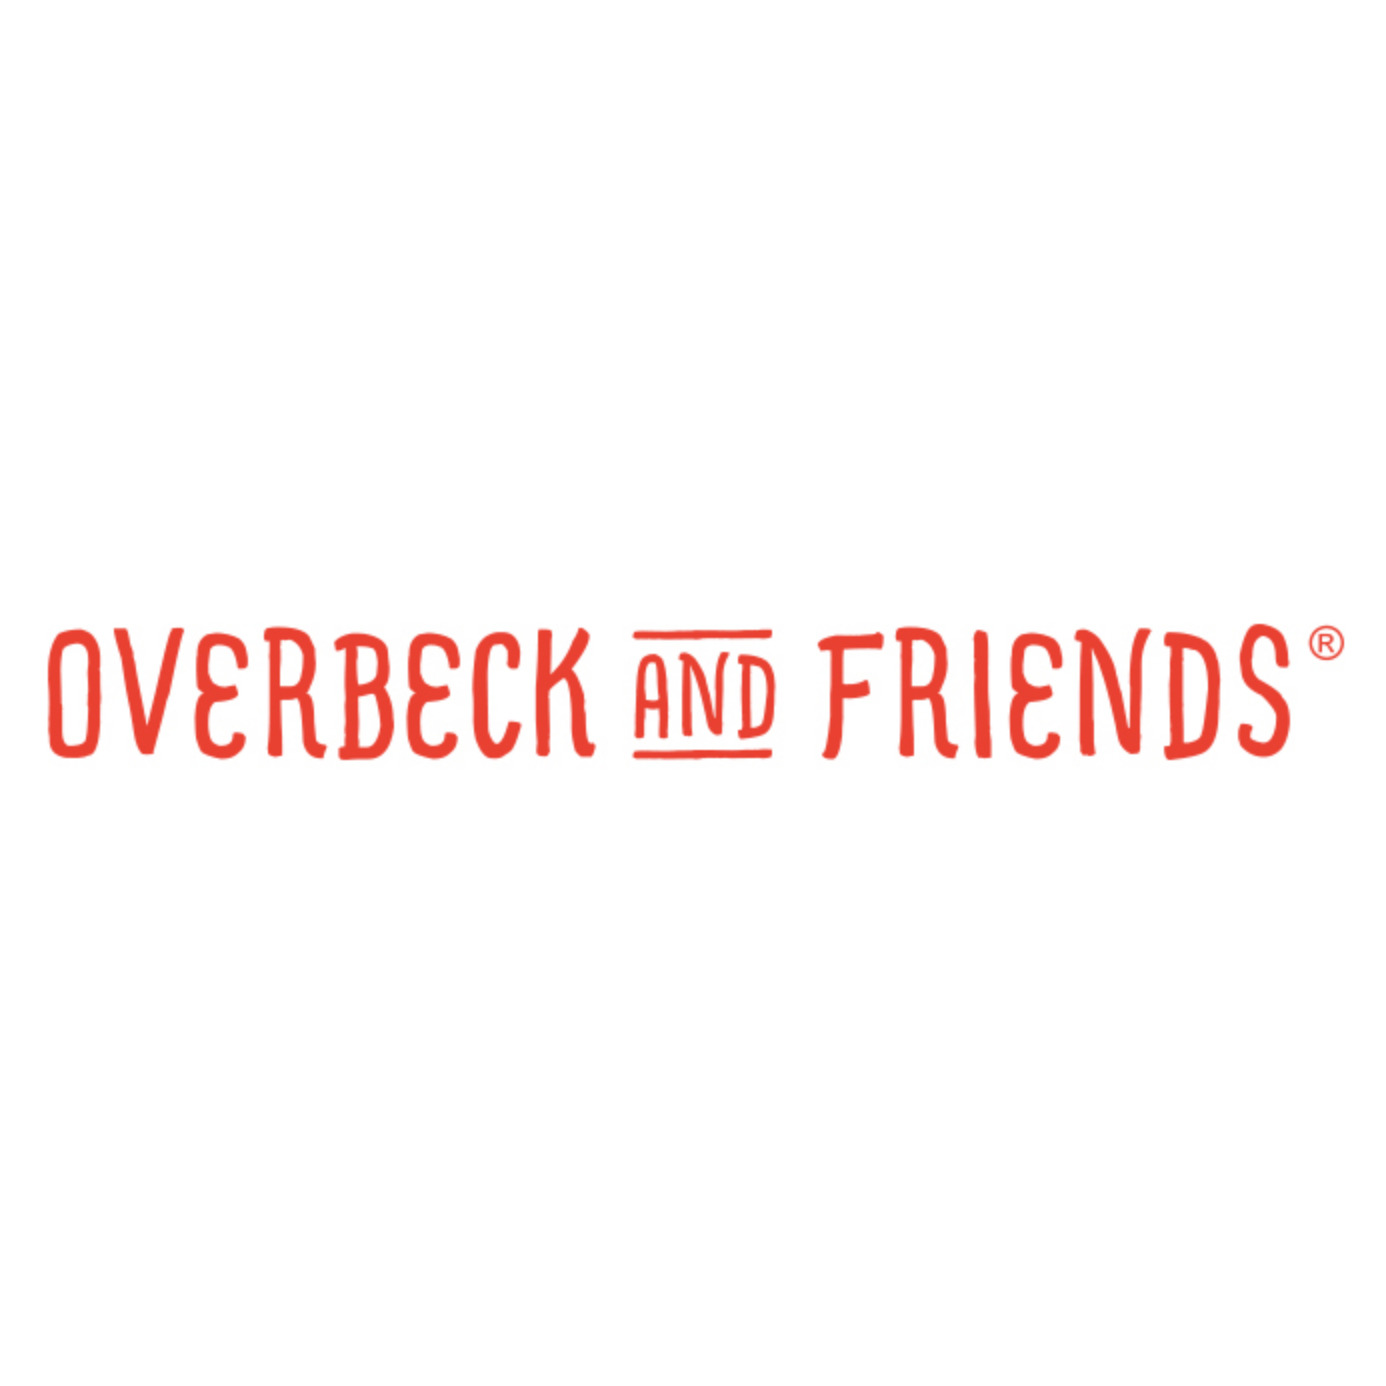 Overbeck and Friends